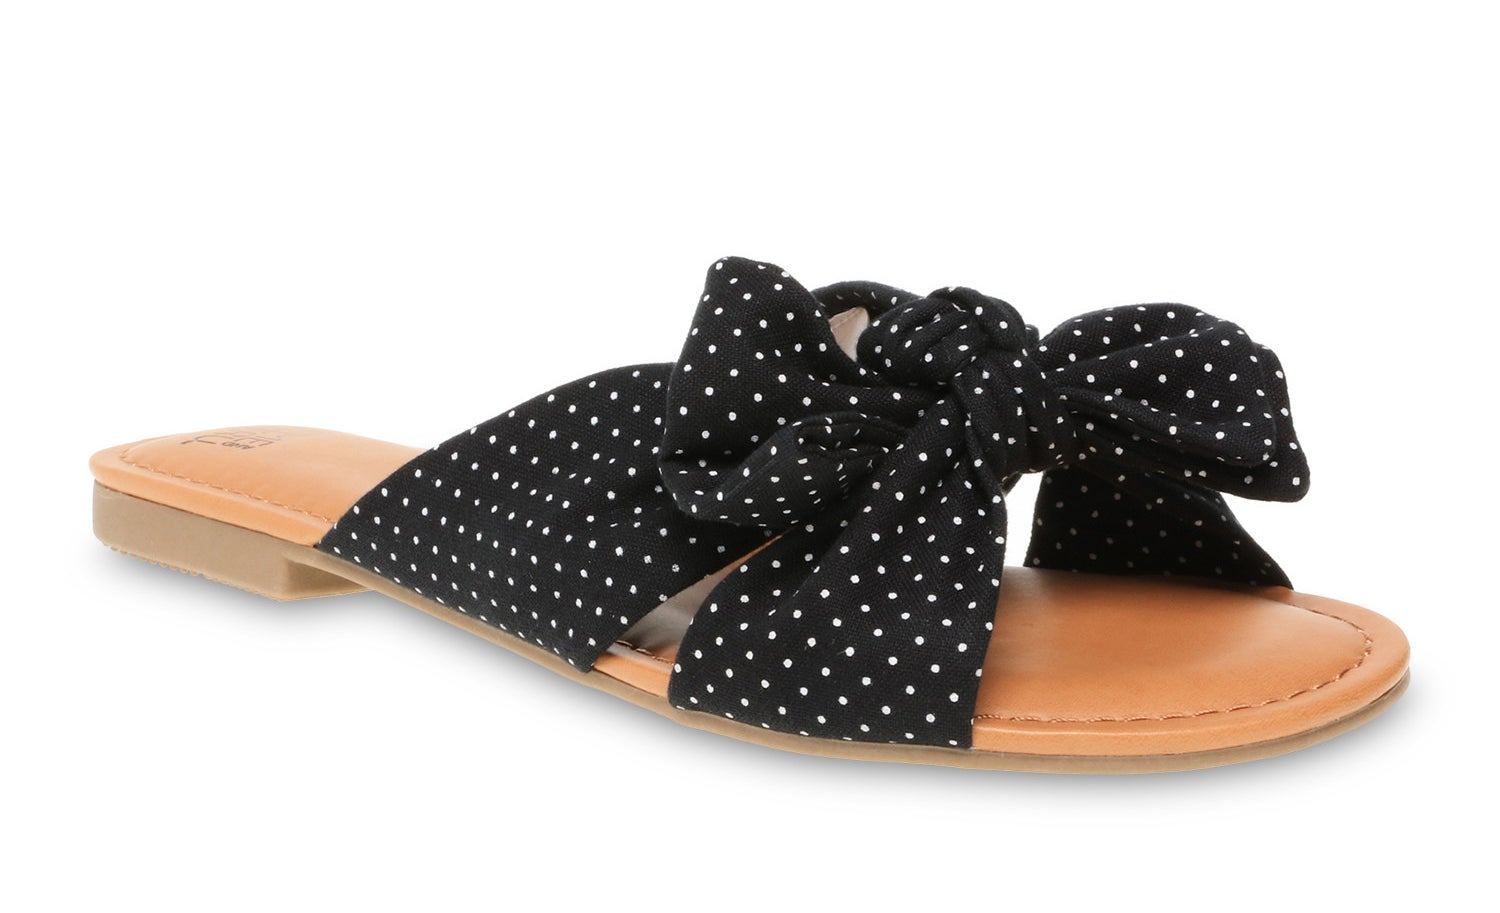 A black and white polka dot bow slide sandal